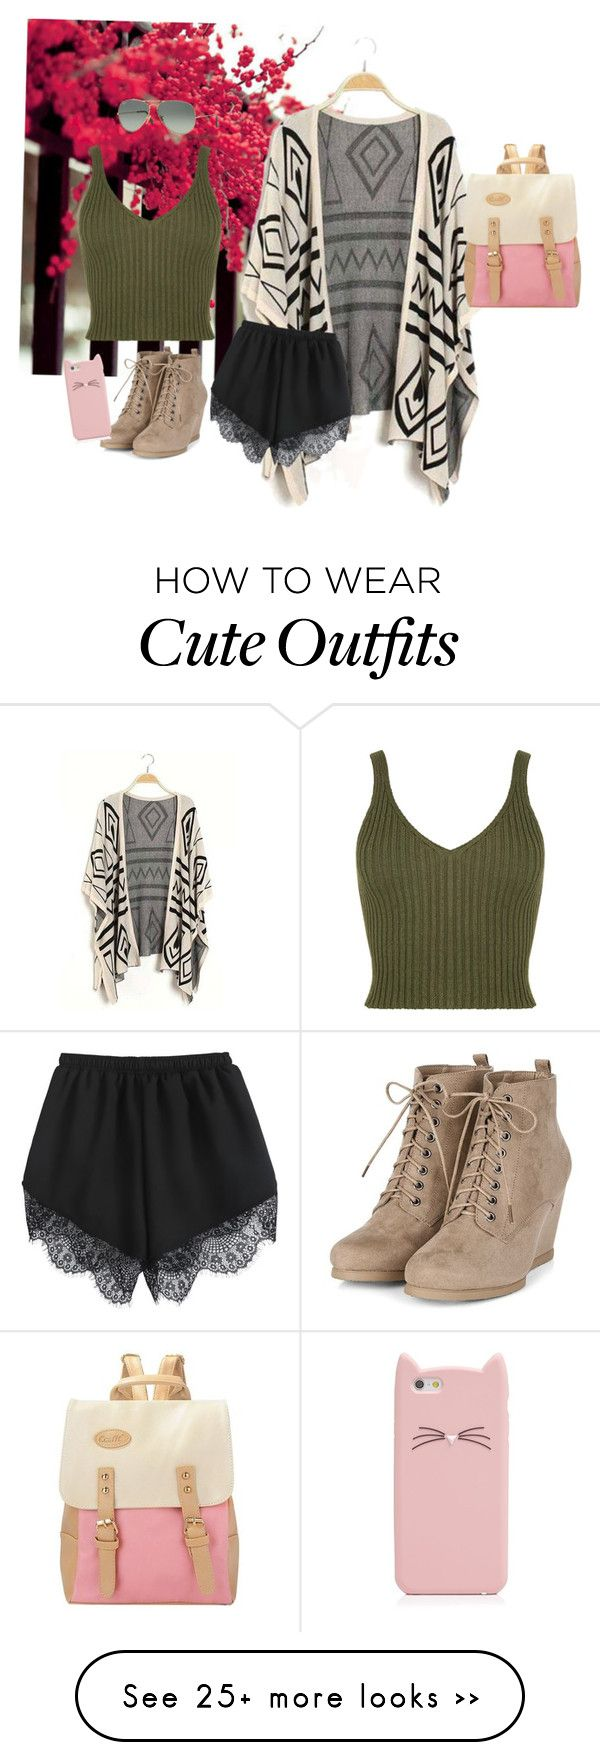 """It's an outfit and I'd wear it"" by velszoe on Polyvore featuring Ray-Ban and Kate Spade"